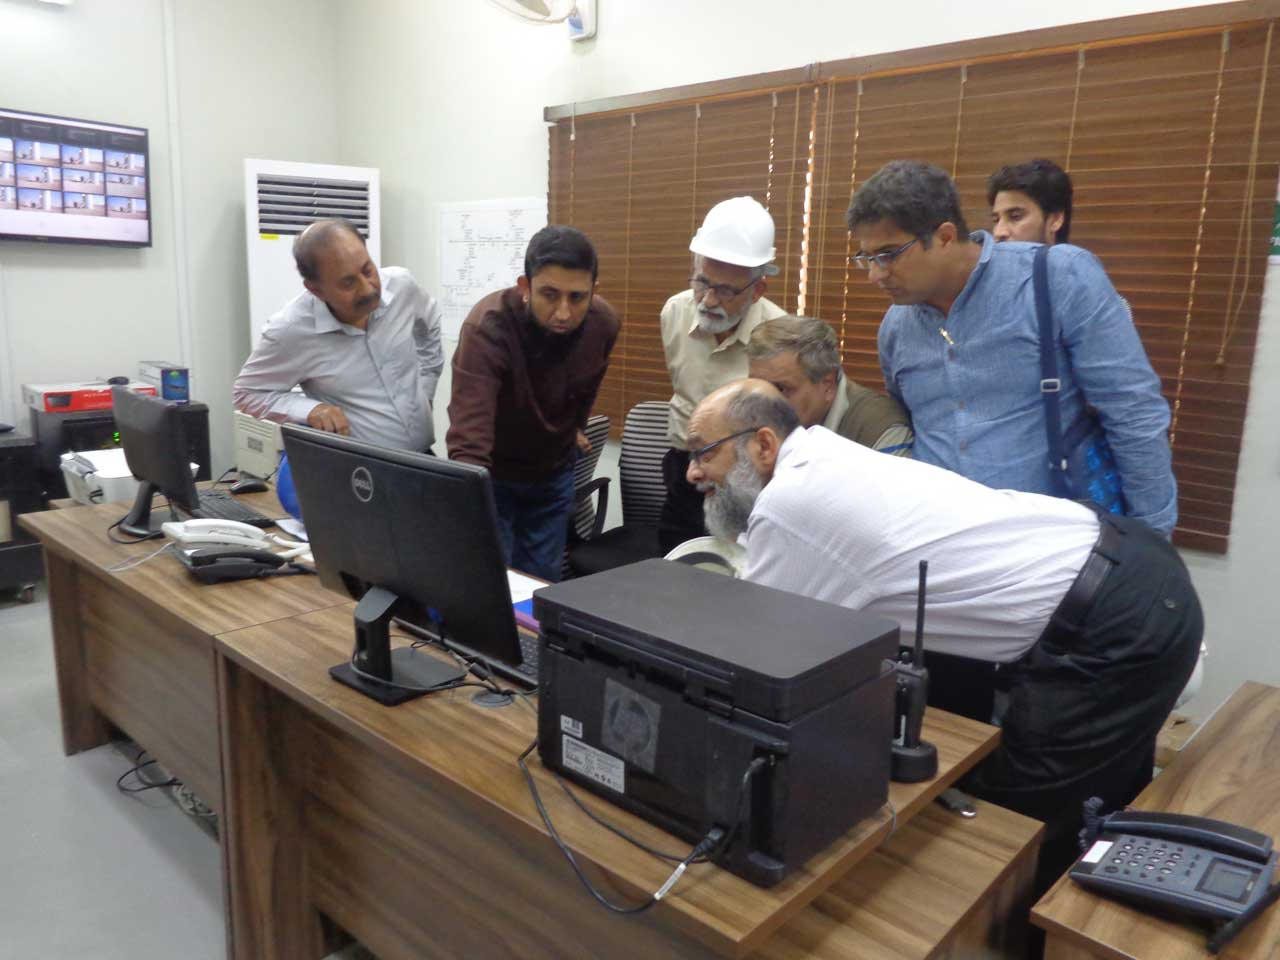 Engr. Ejazul Haque, Engr. Jamil Ahmed, Engr. Maqsood Ahmed, Engr. M. Rizwan and M Taufiq Bilwani are discussing in the control room